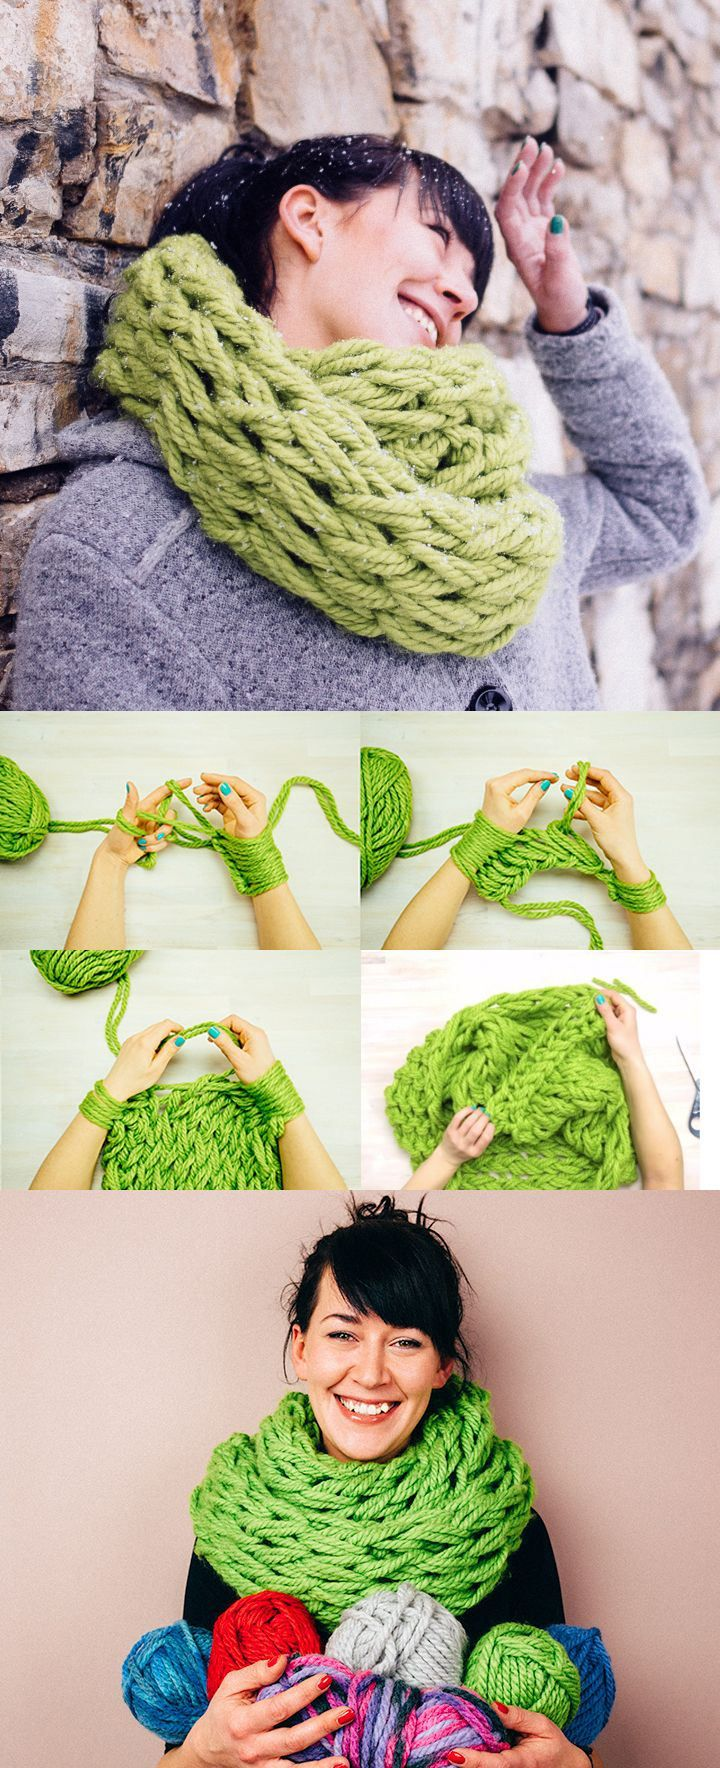 DIY 30-Minute Infinity Scarf @hellkat13 can you imagine? I would have a giant knot!